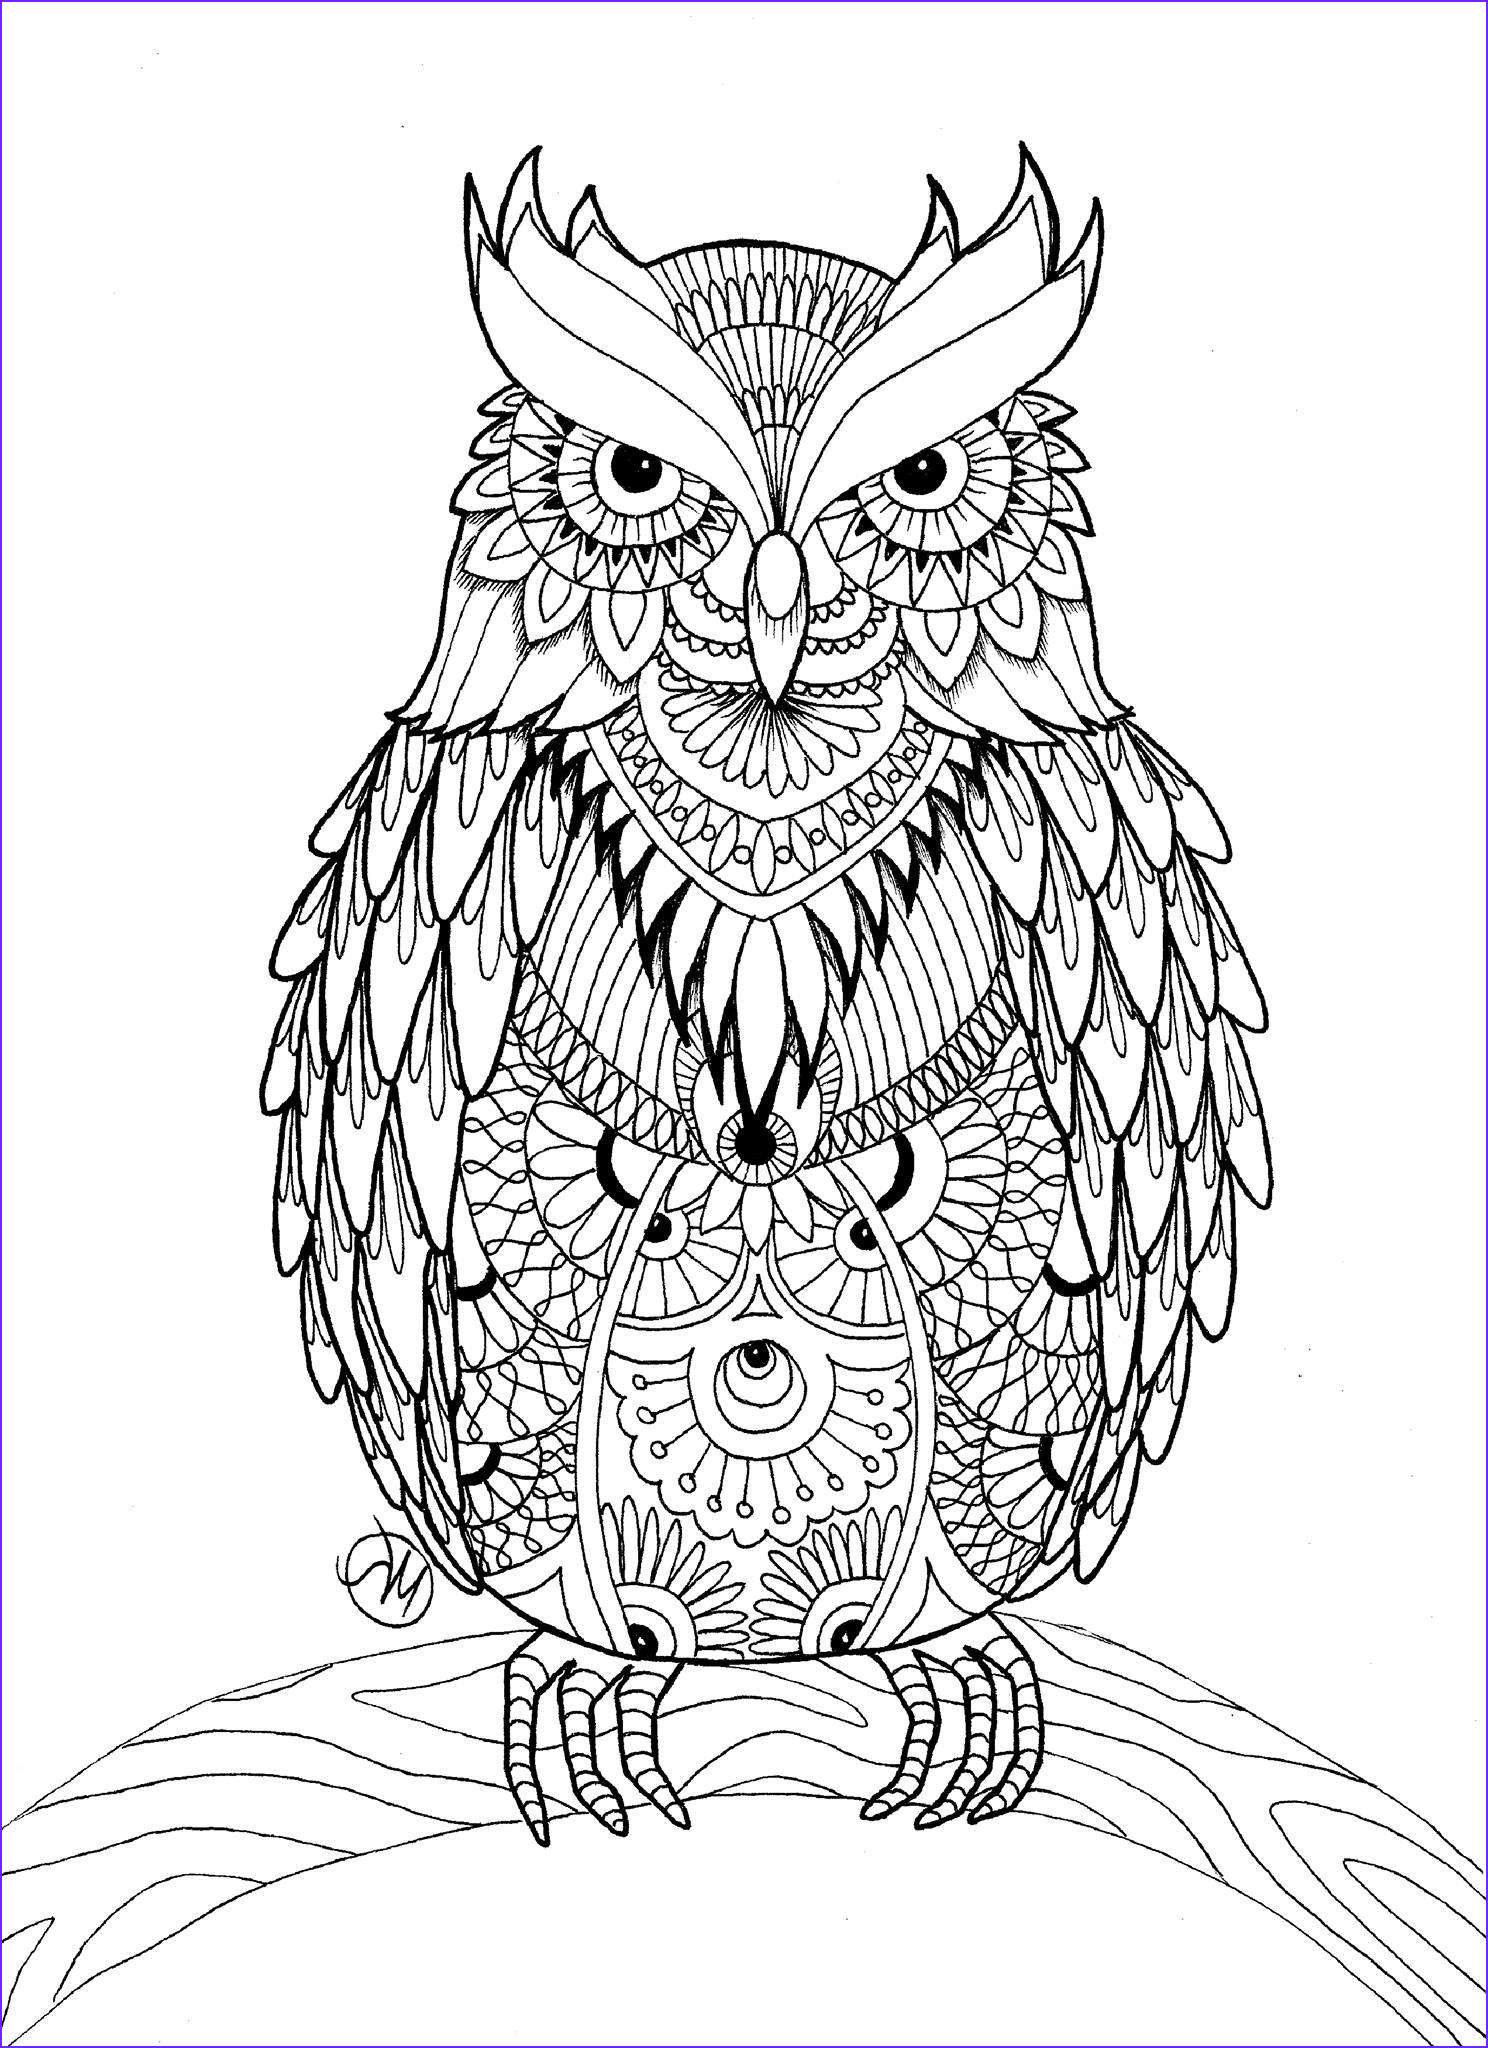 Coloring Pictures for Adults Awesome Photos Owl Coloring Pages for Adults Free Detailed Owl Coloring